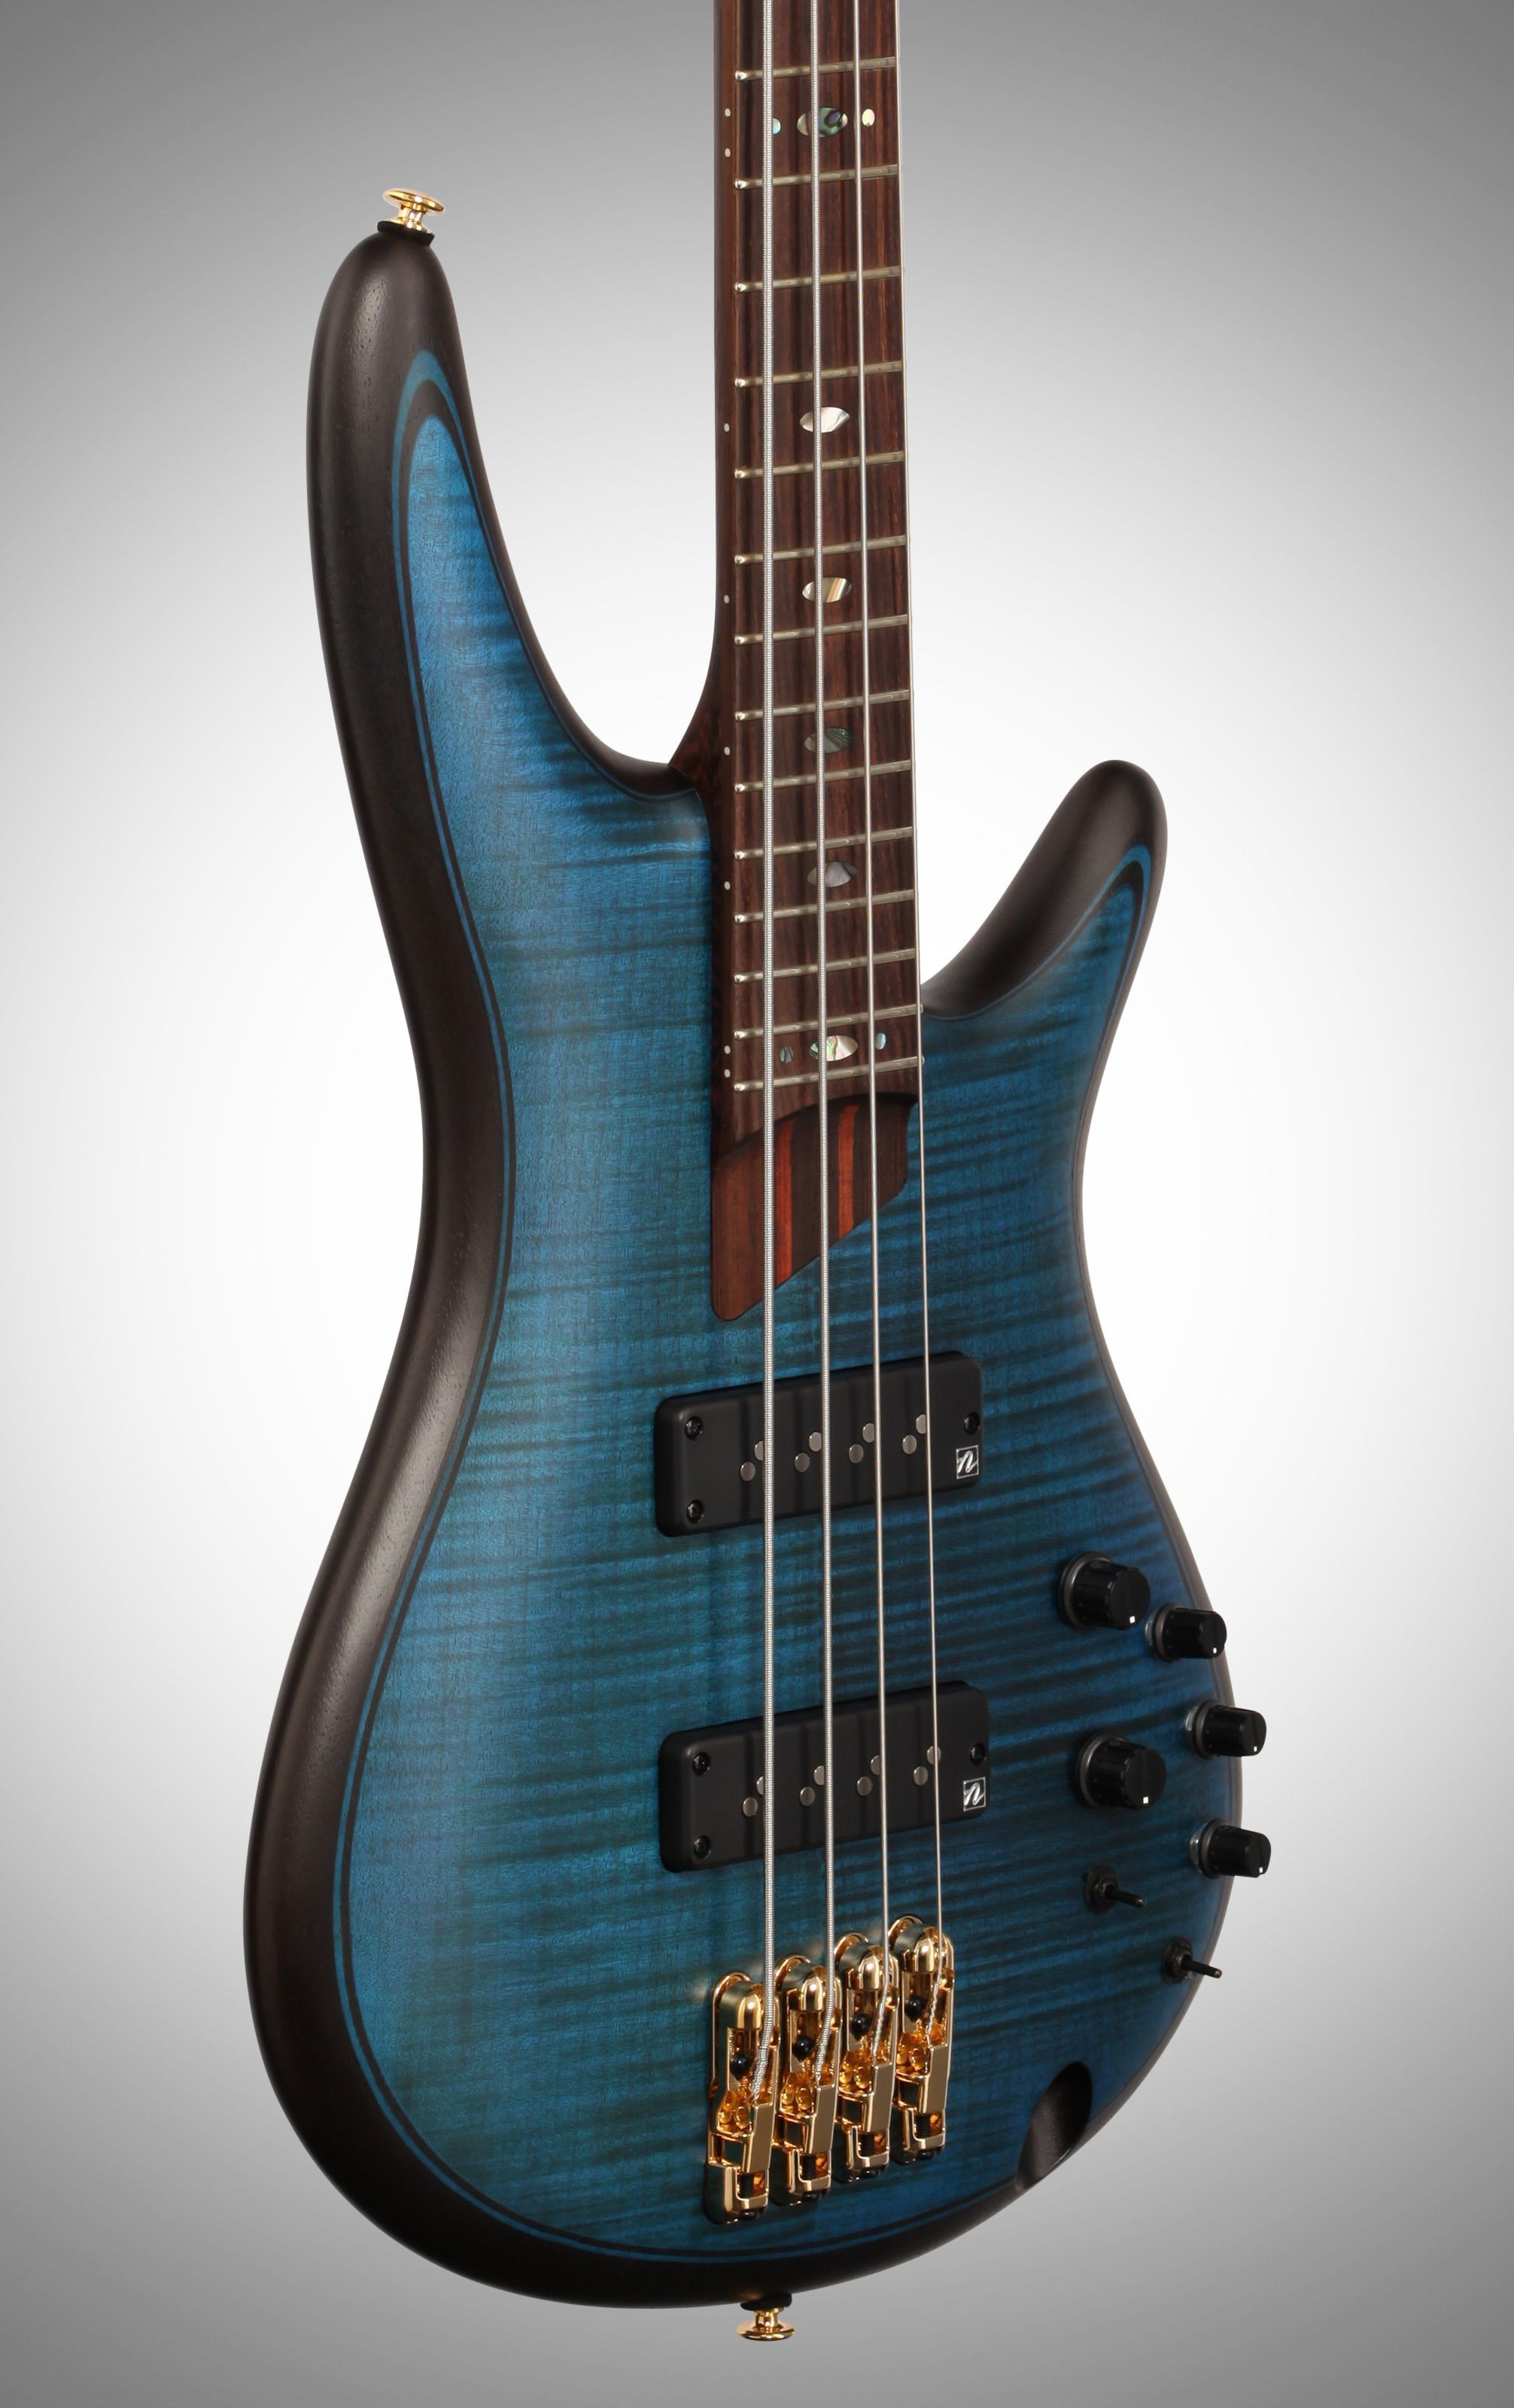 Rogue LX200BF Fretless Series III Electric Bass Guitar Metallic Blue mon Shopping Pinterest